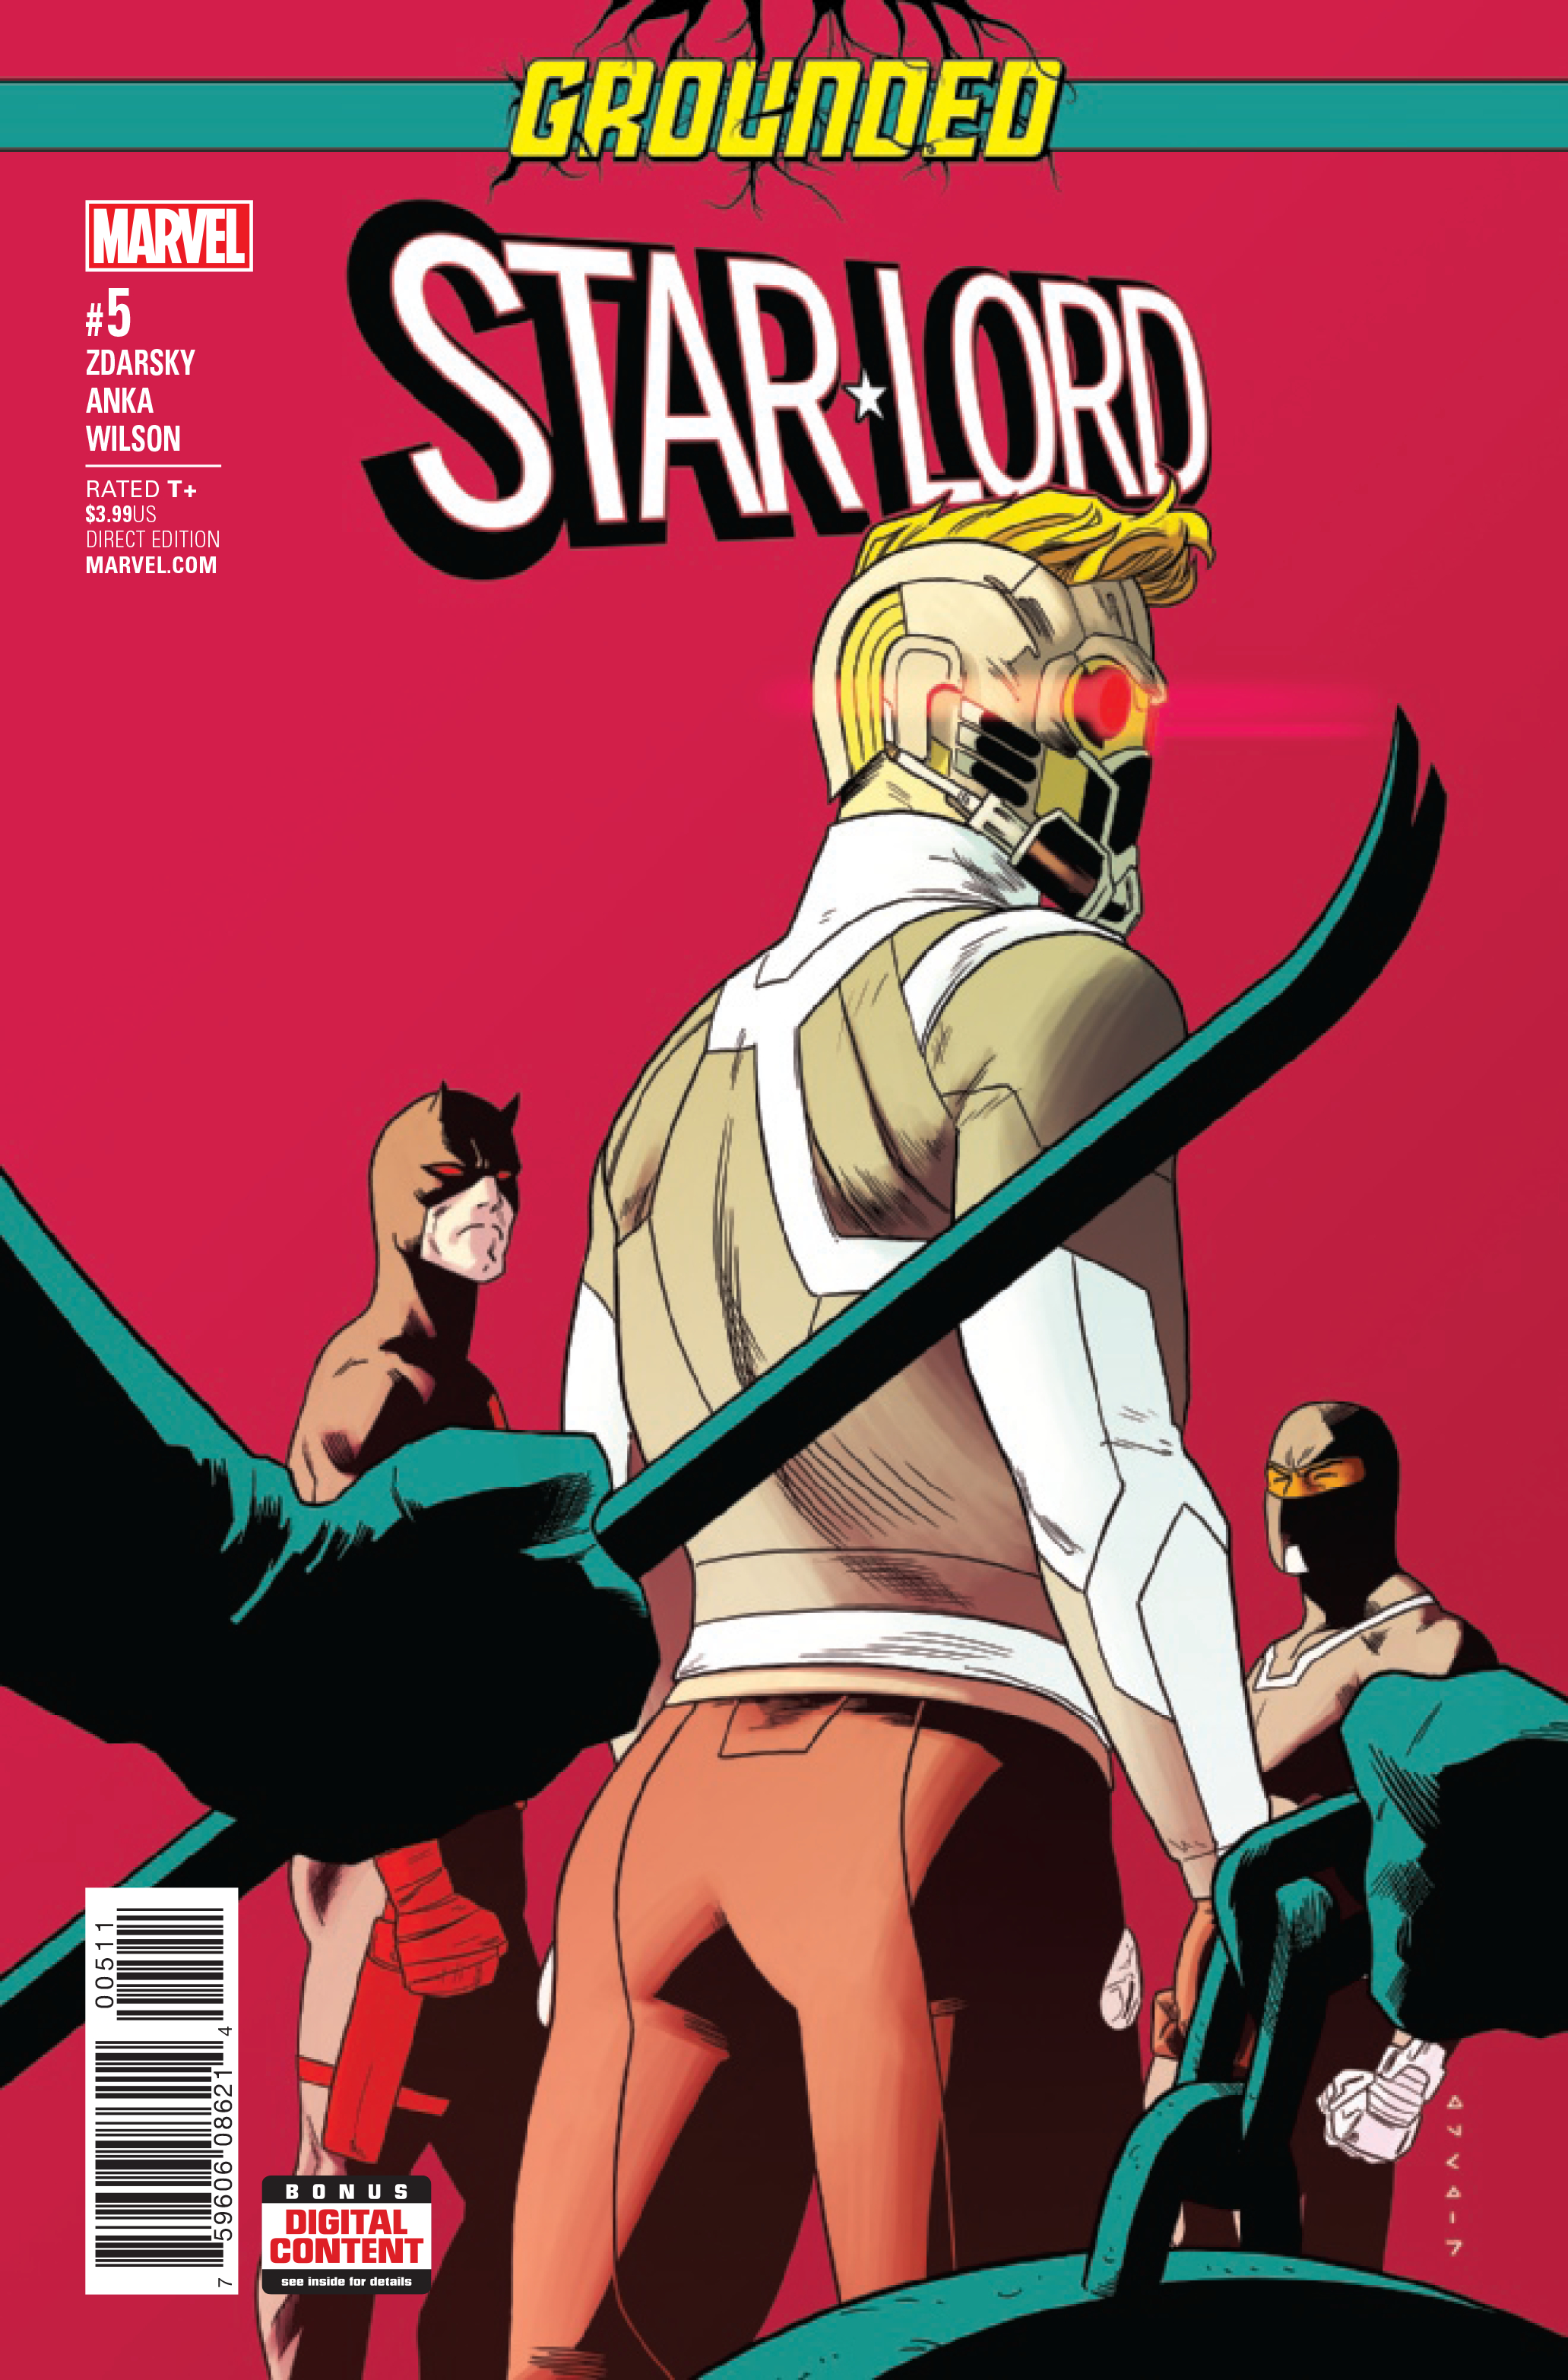 STAR-LORD #5